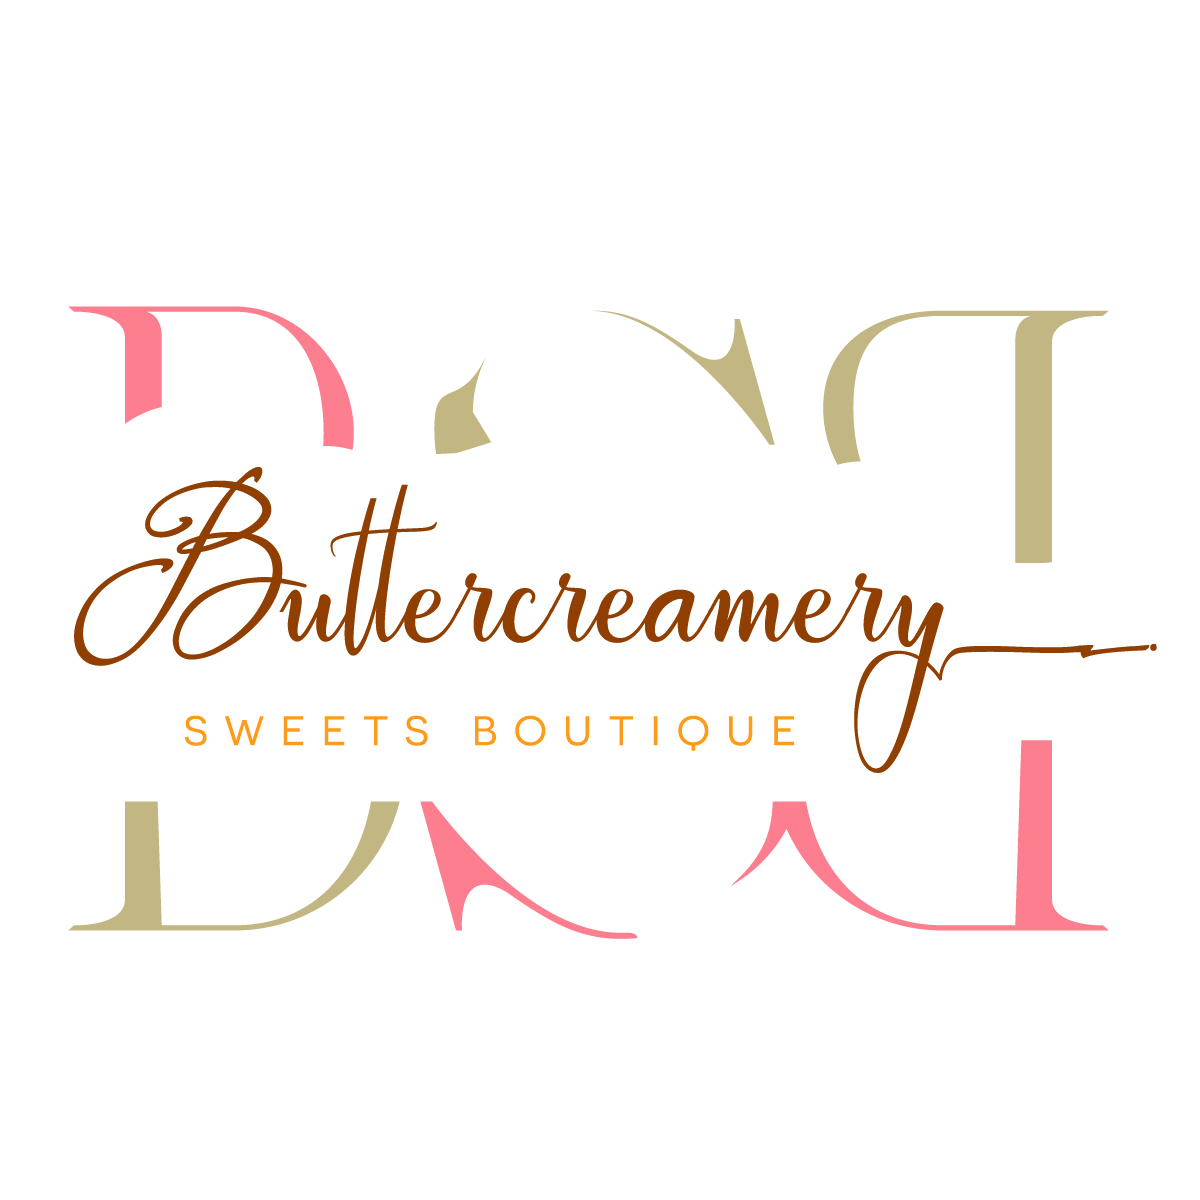 Buttercreamery